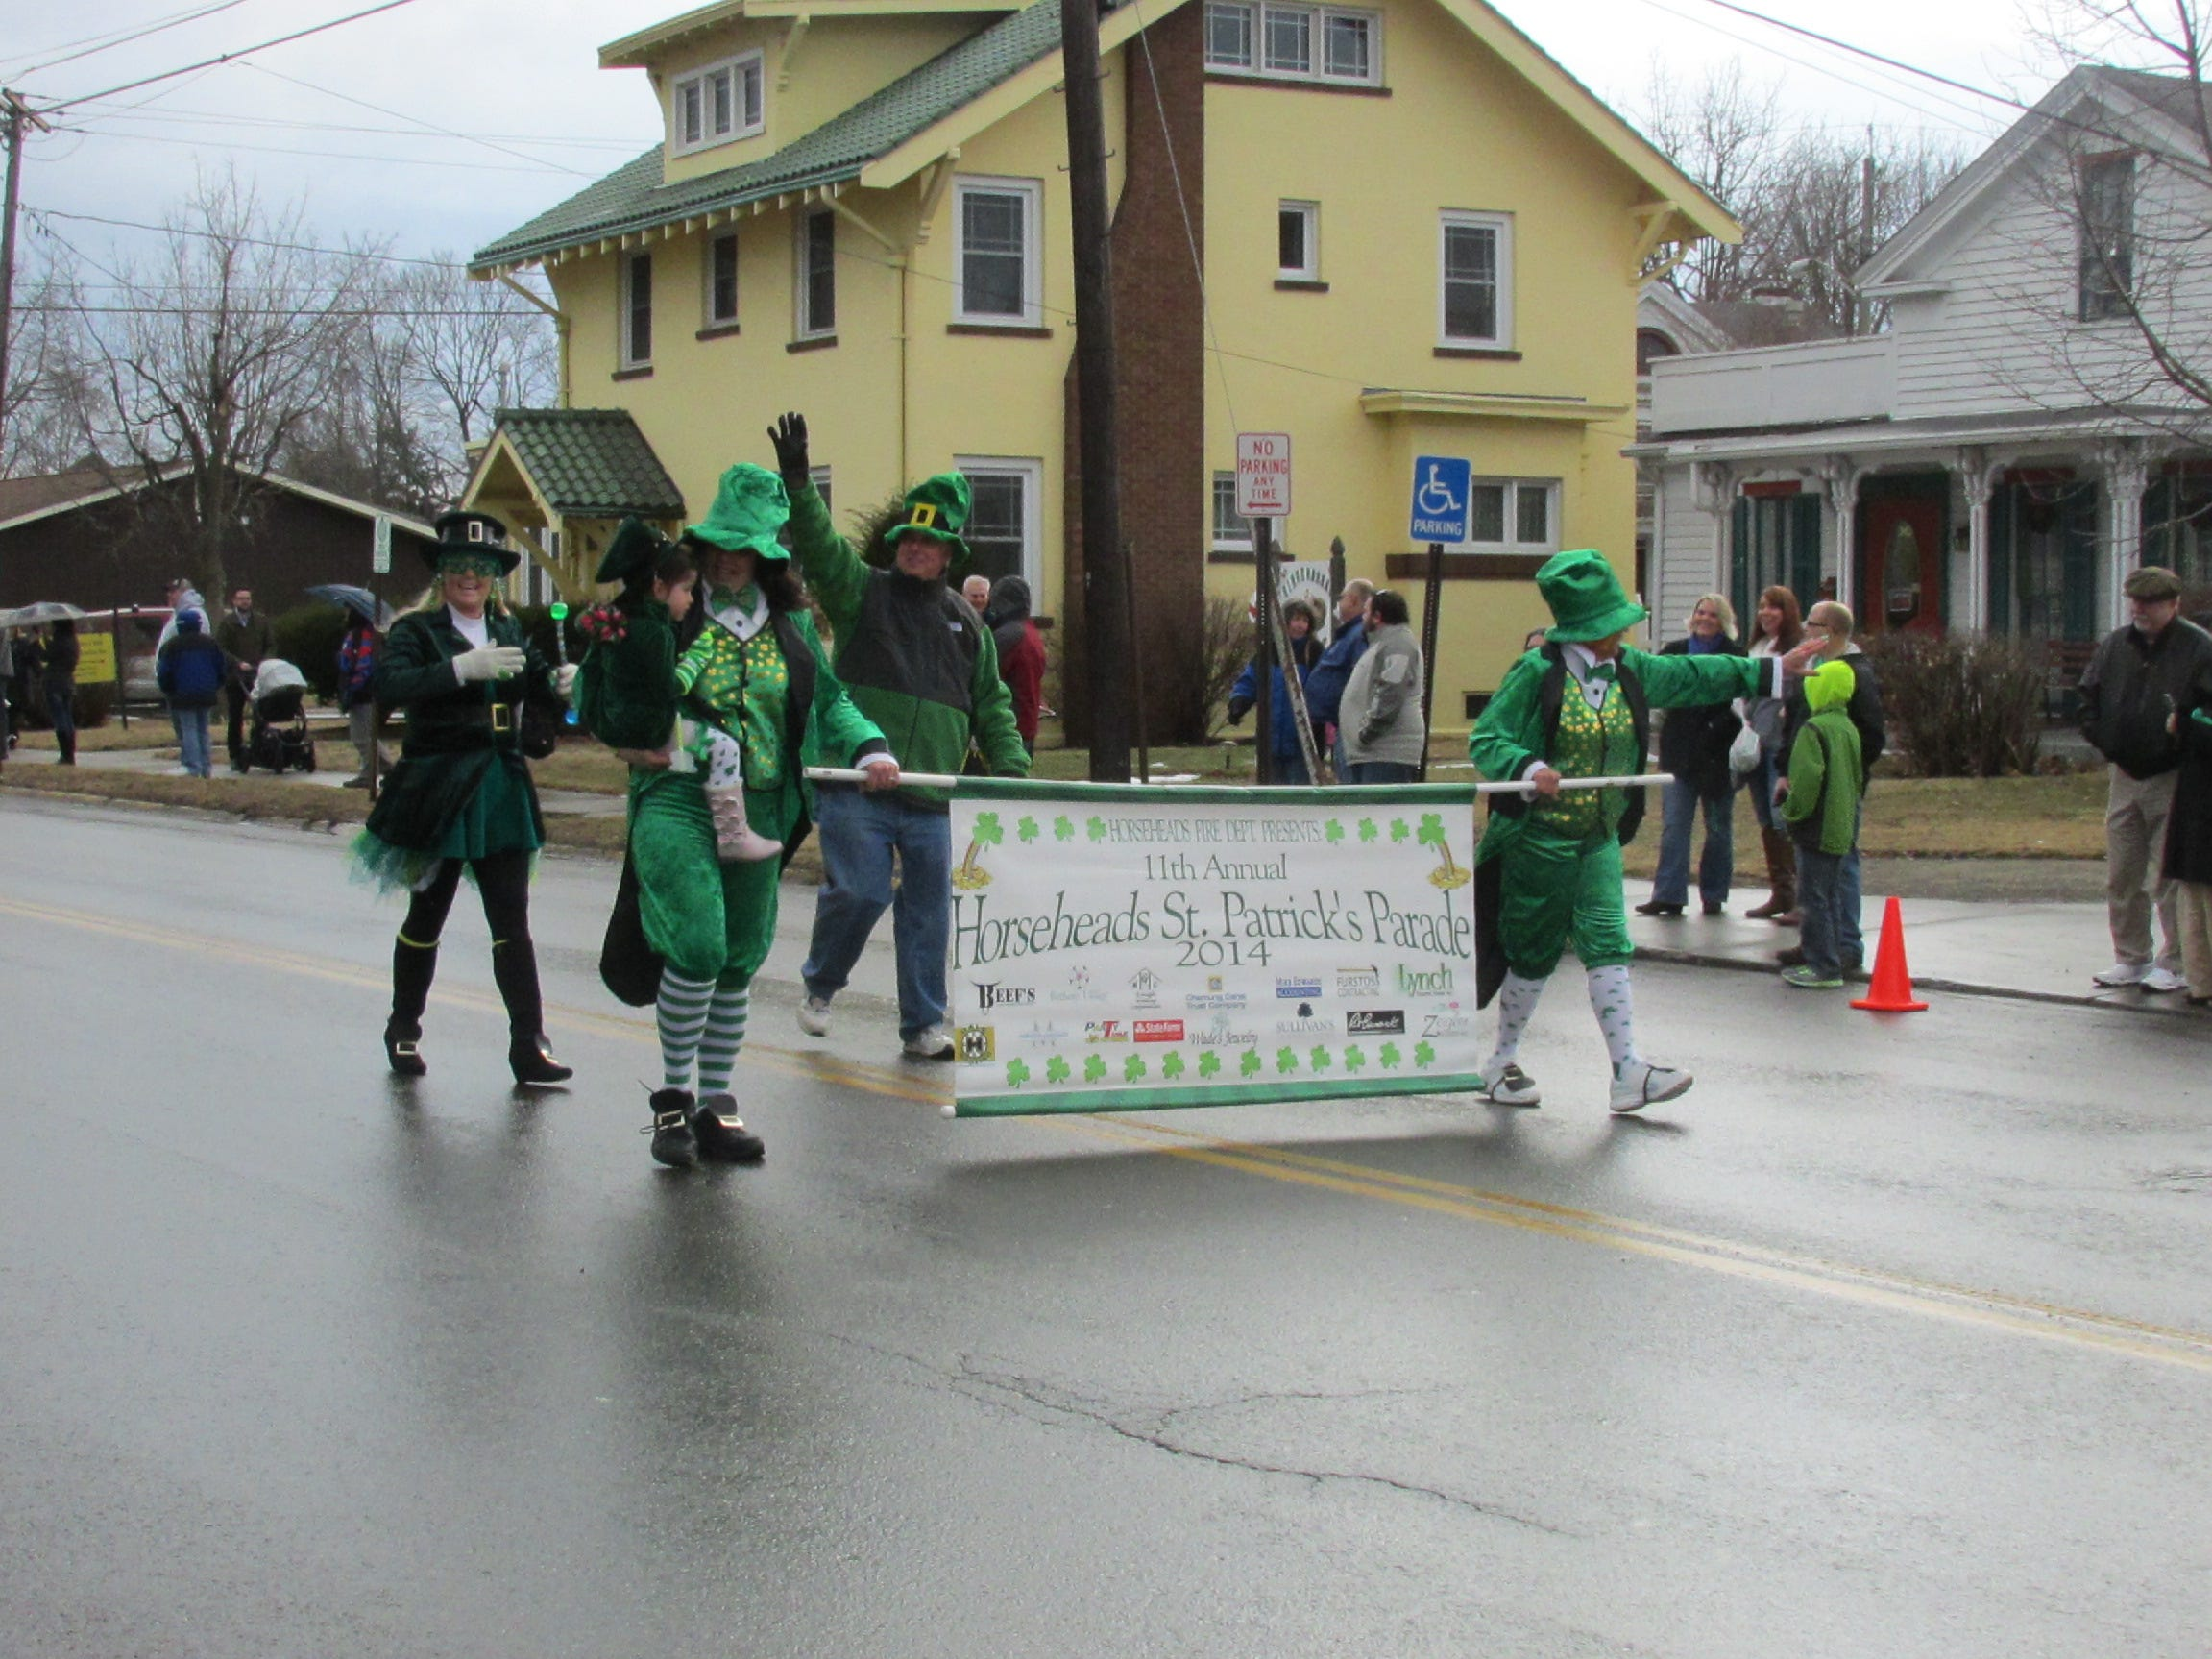 2013: A group of leprechauns lead the 11th annual St. PatrickÕs Day parade Saturday in Horseheads.